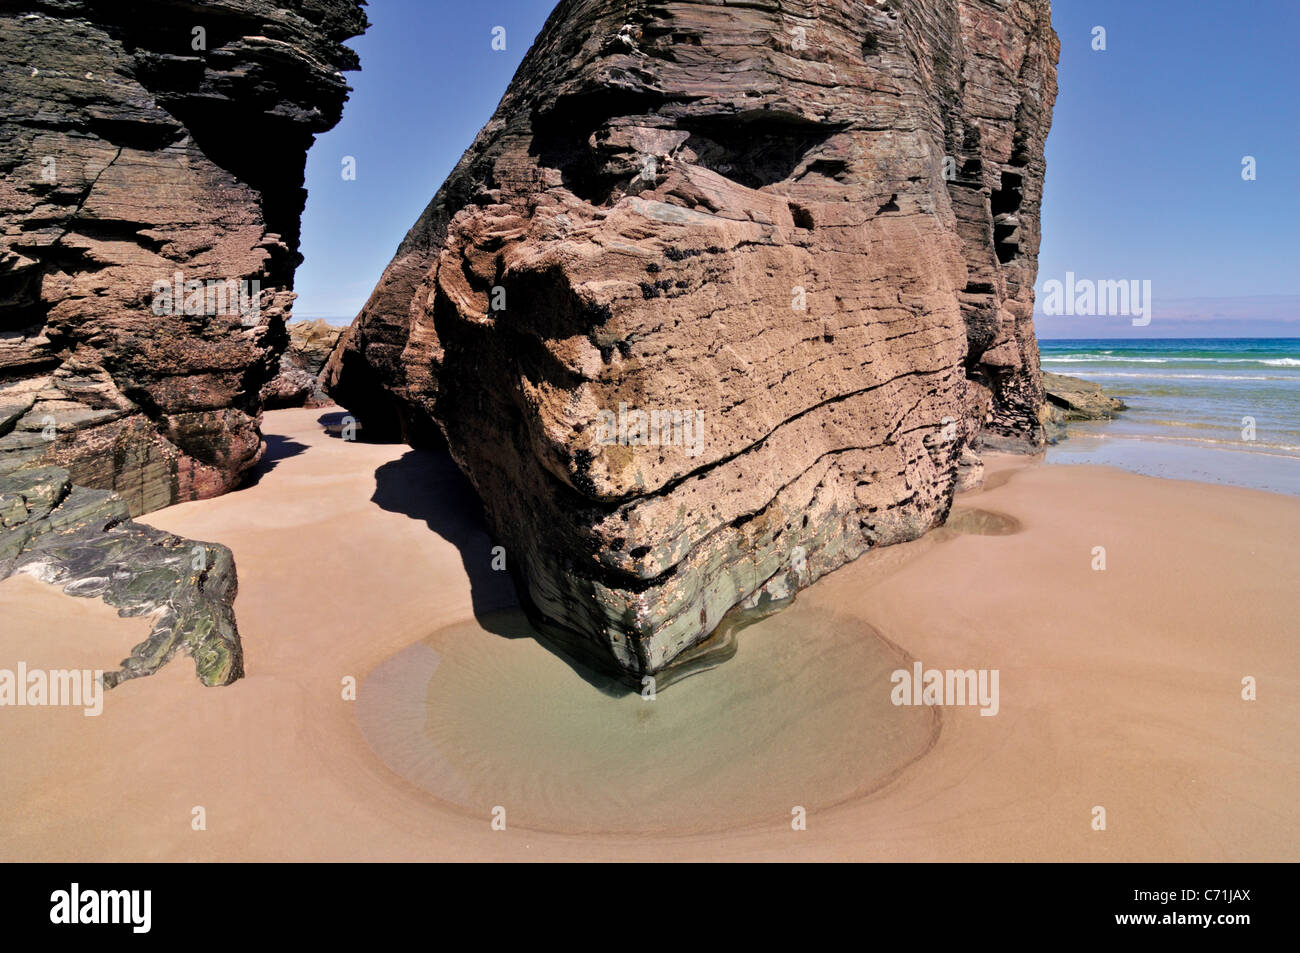 Spain, Galicia: Rocks at beach Praia As Catedrais - Stock Image